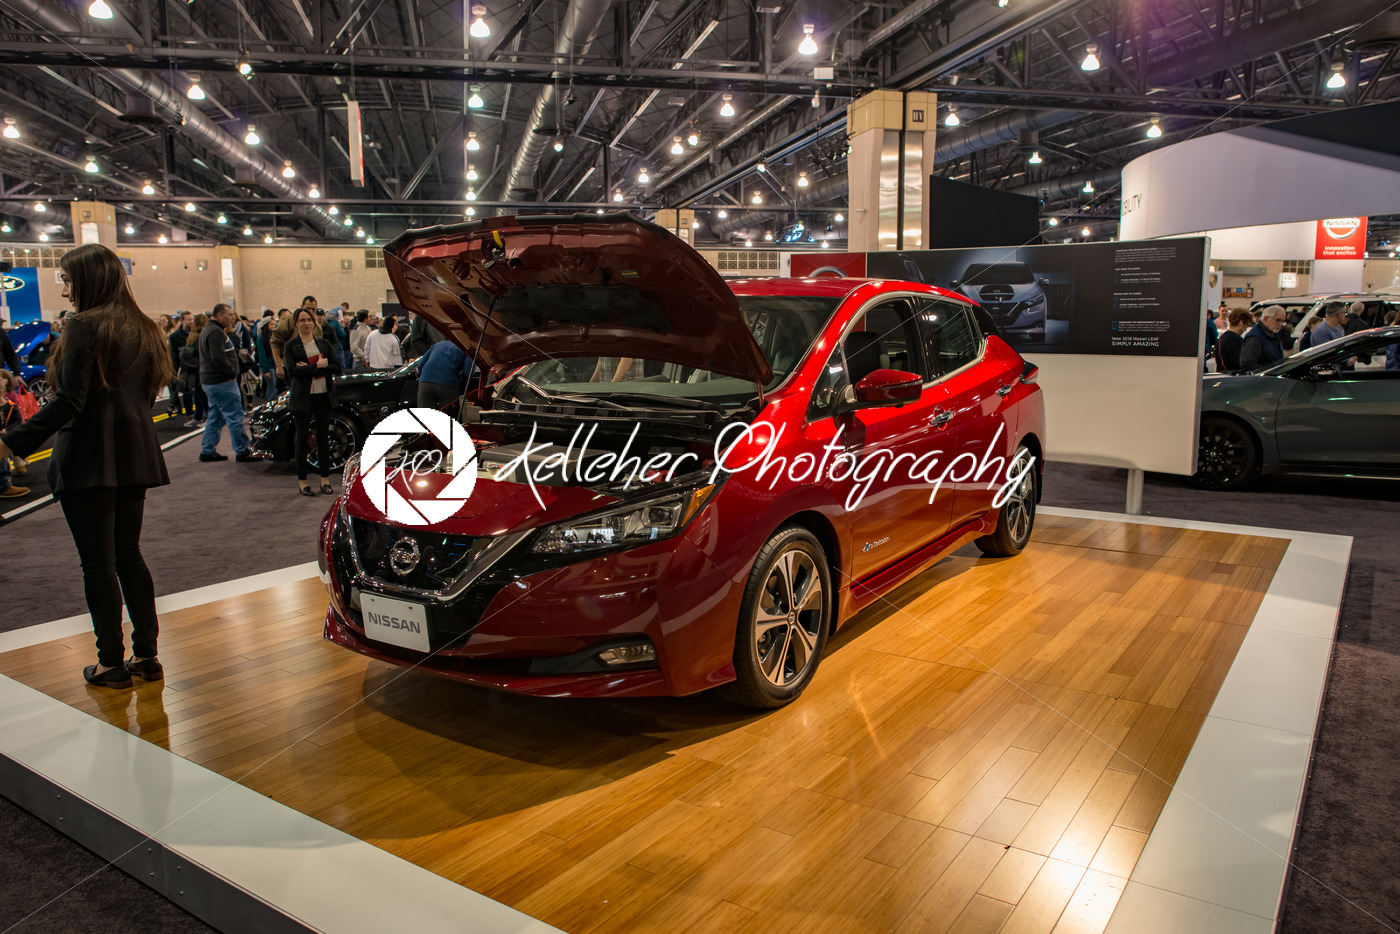 PHILADELPHIA, PA – Feb 3: Nissan Leaf EV electric vehicle at the 2018 Philadelphia Auto Show - Kelleher Photography Store